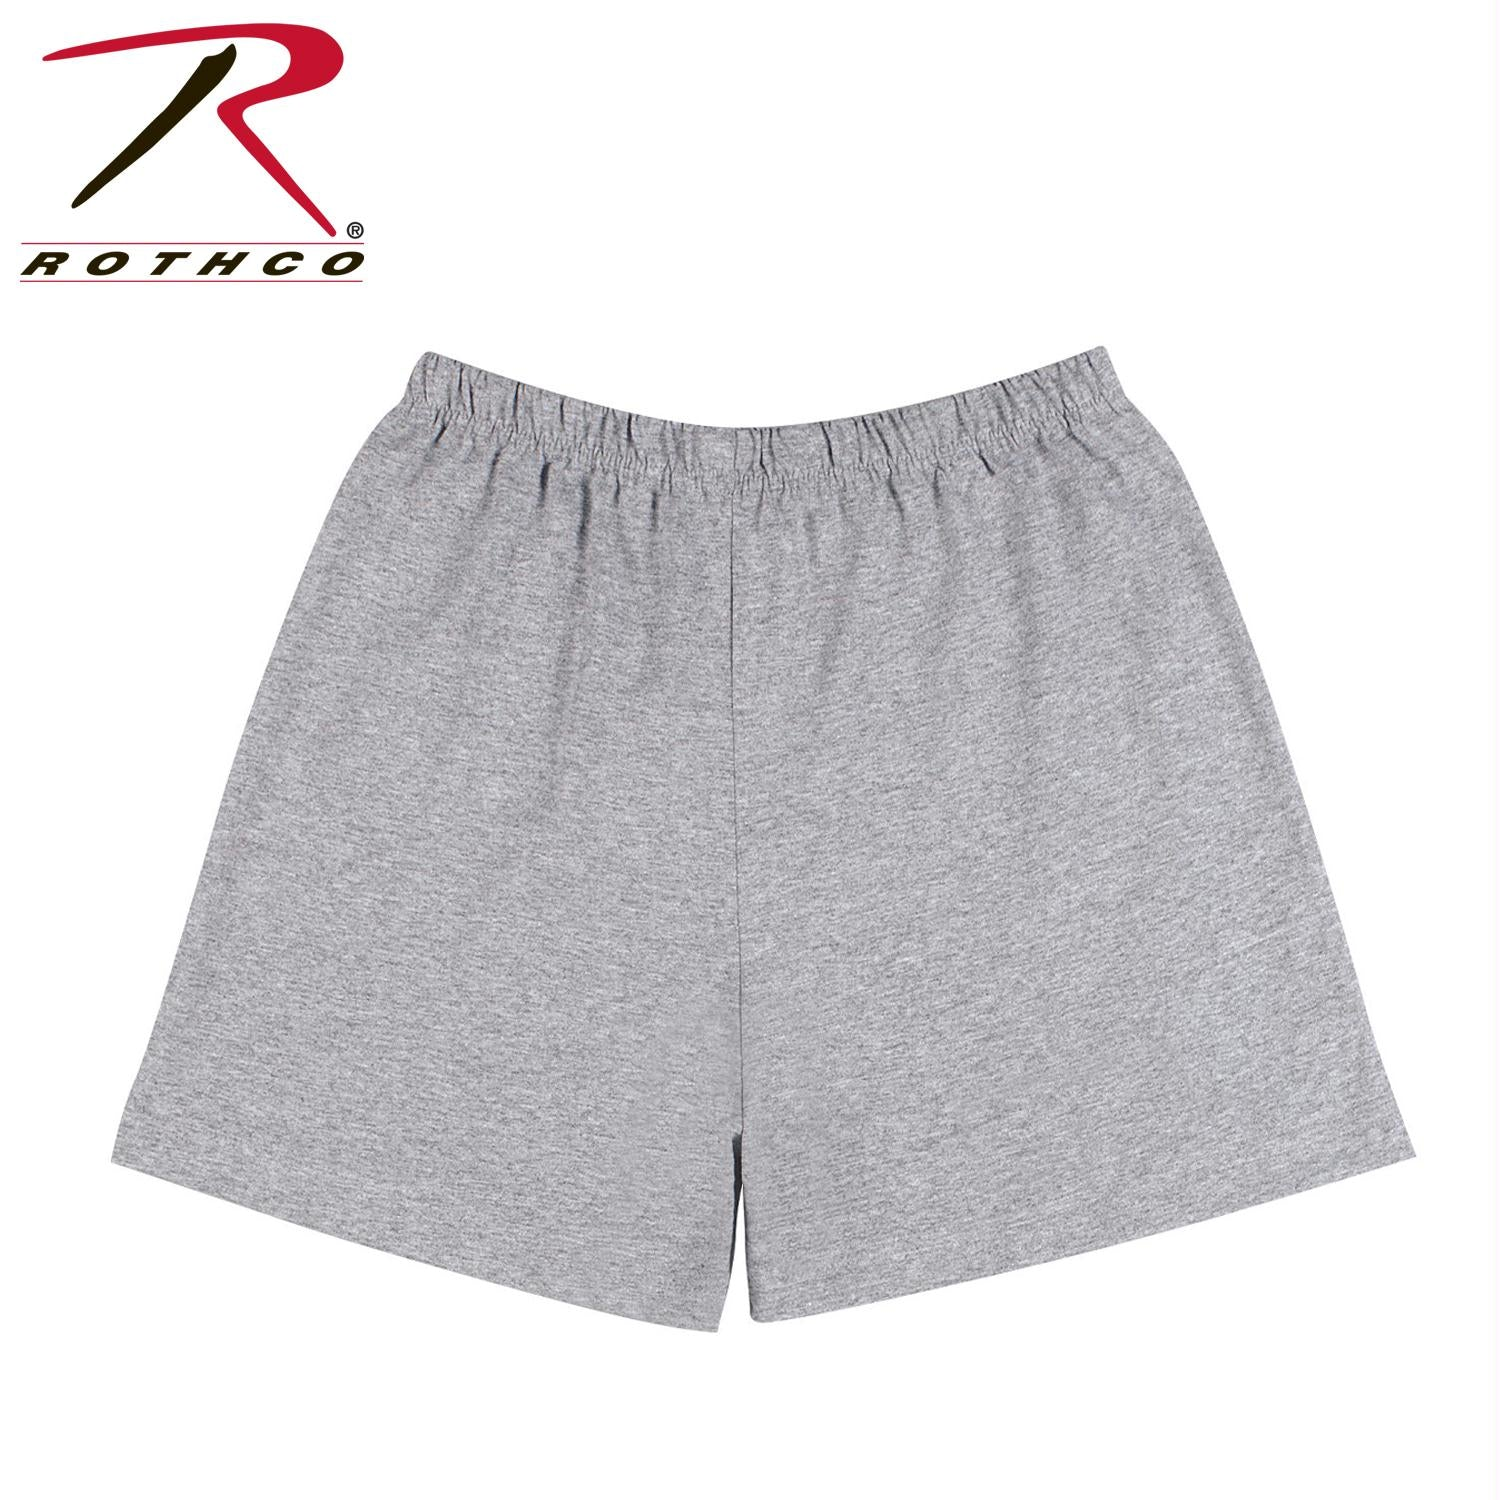 Rothco Classic Physical Training Shorts